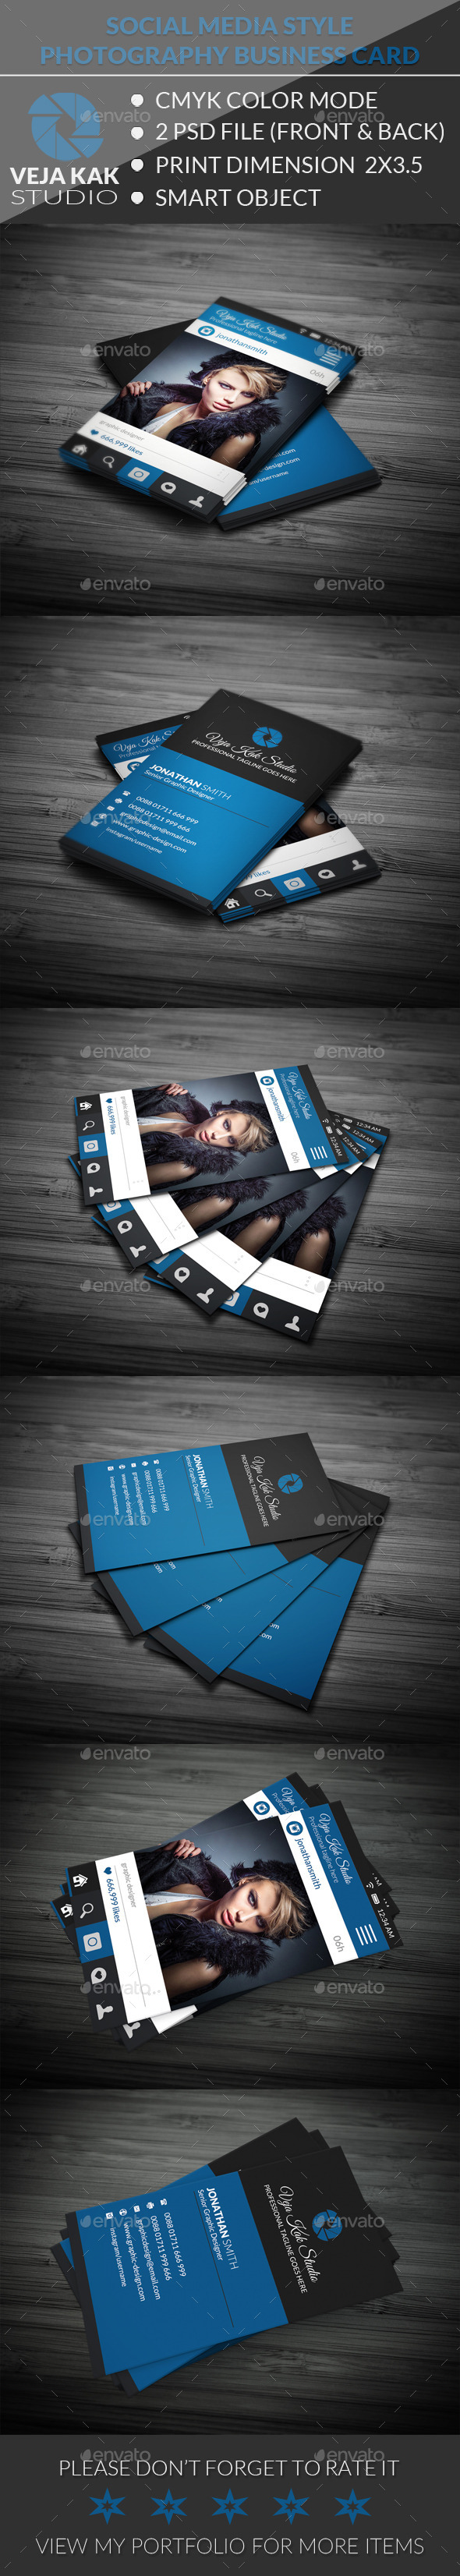 GraphicRiver Social Media Style Photography Business Card 11868296